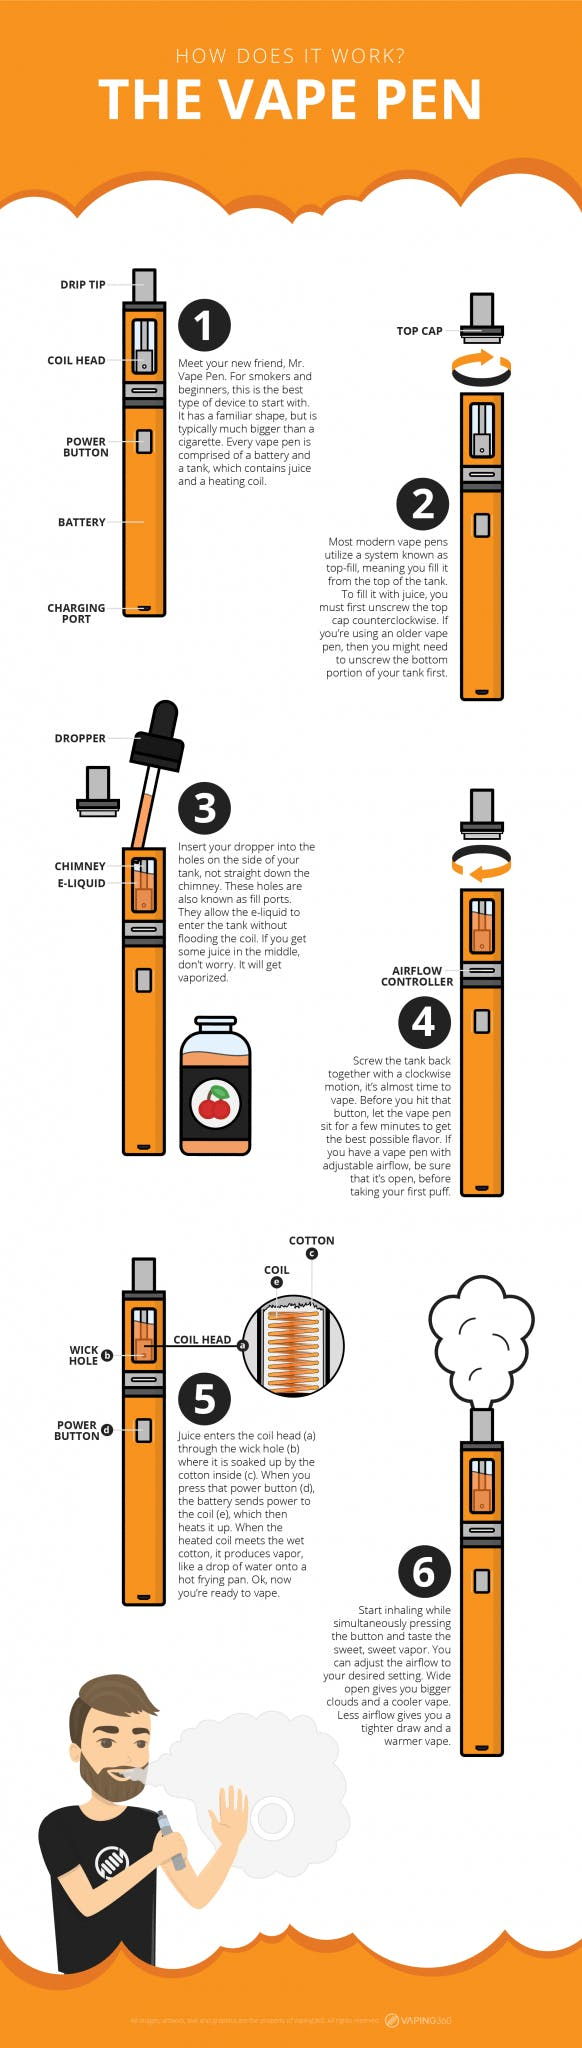 vape pen how does it work - Infographic